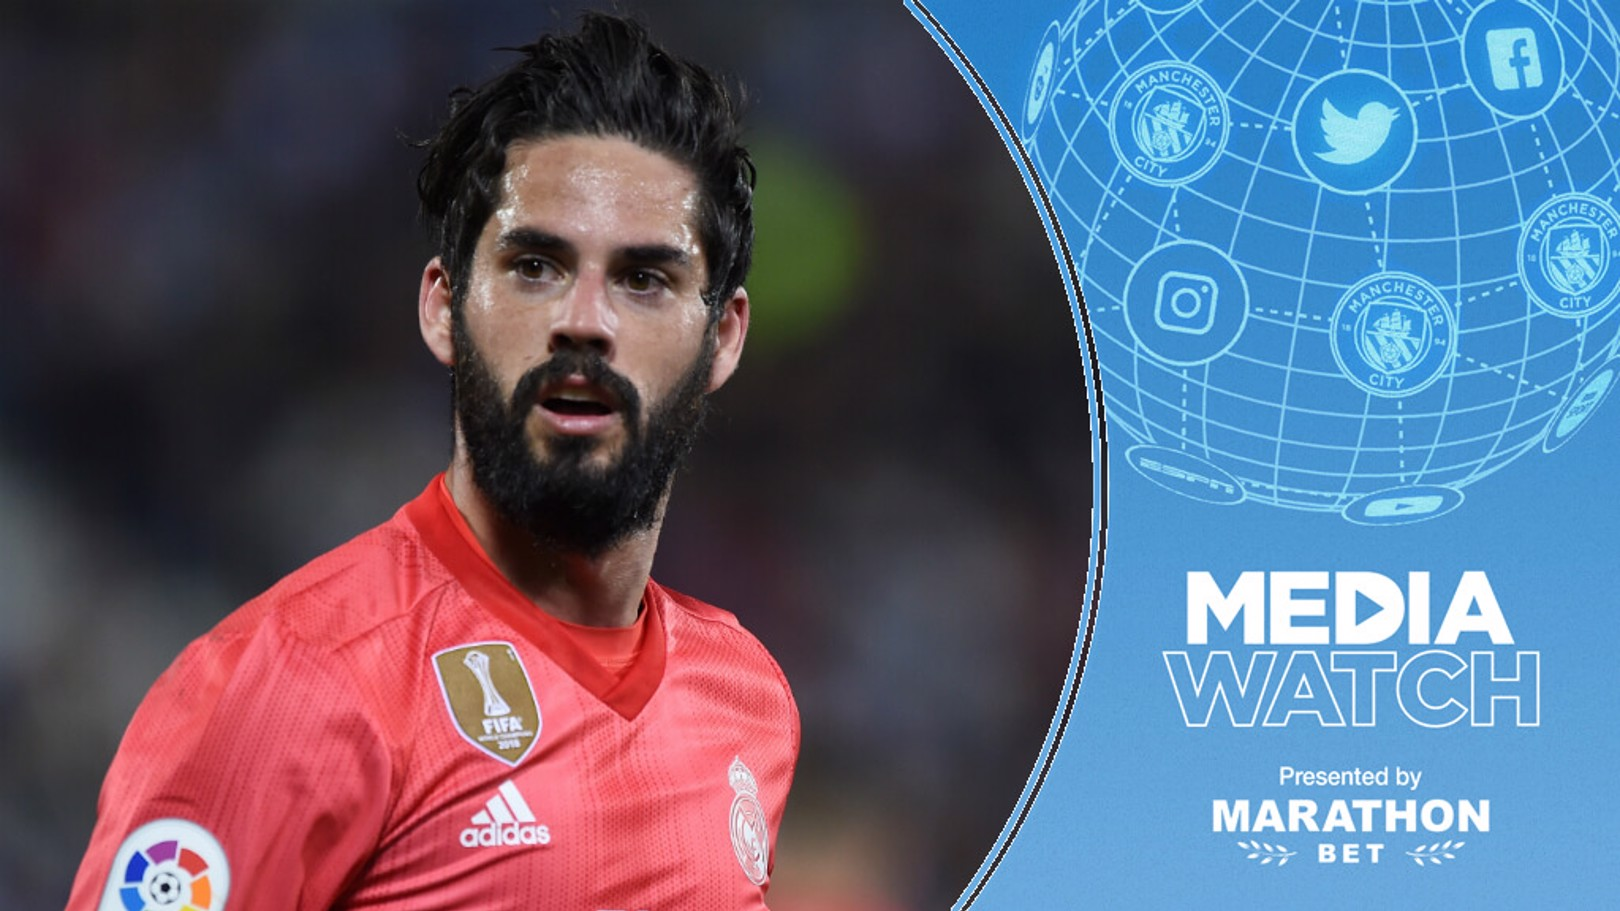 MEDIA WATCH: Your daily round-up of City news, views, gossip and opinion...